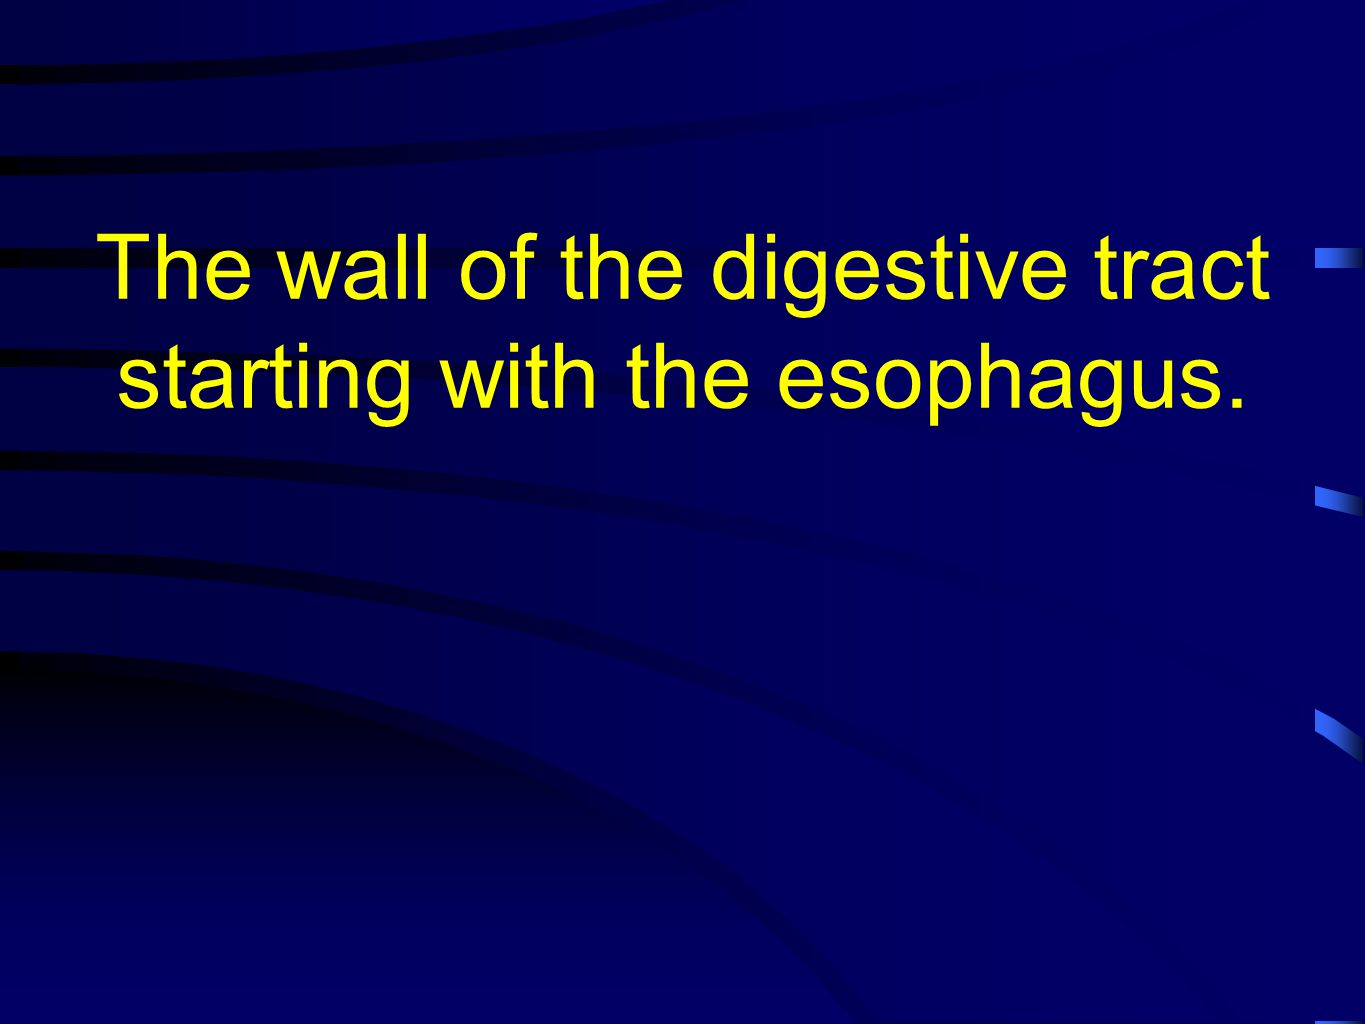 The wall of the digestive tract starting with the esophagus.